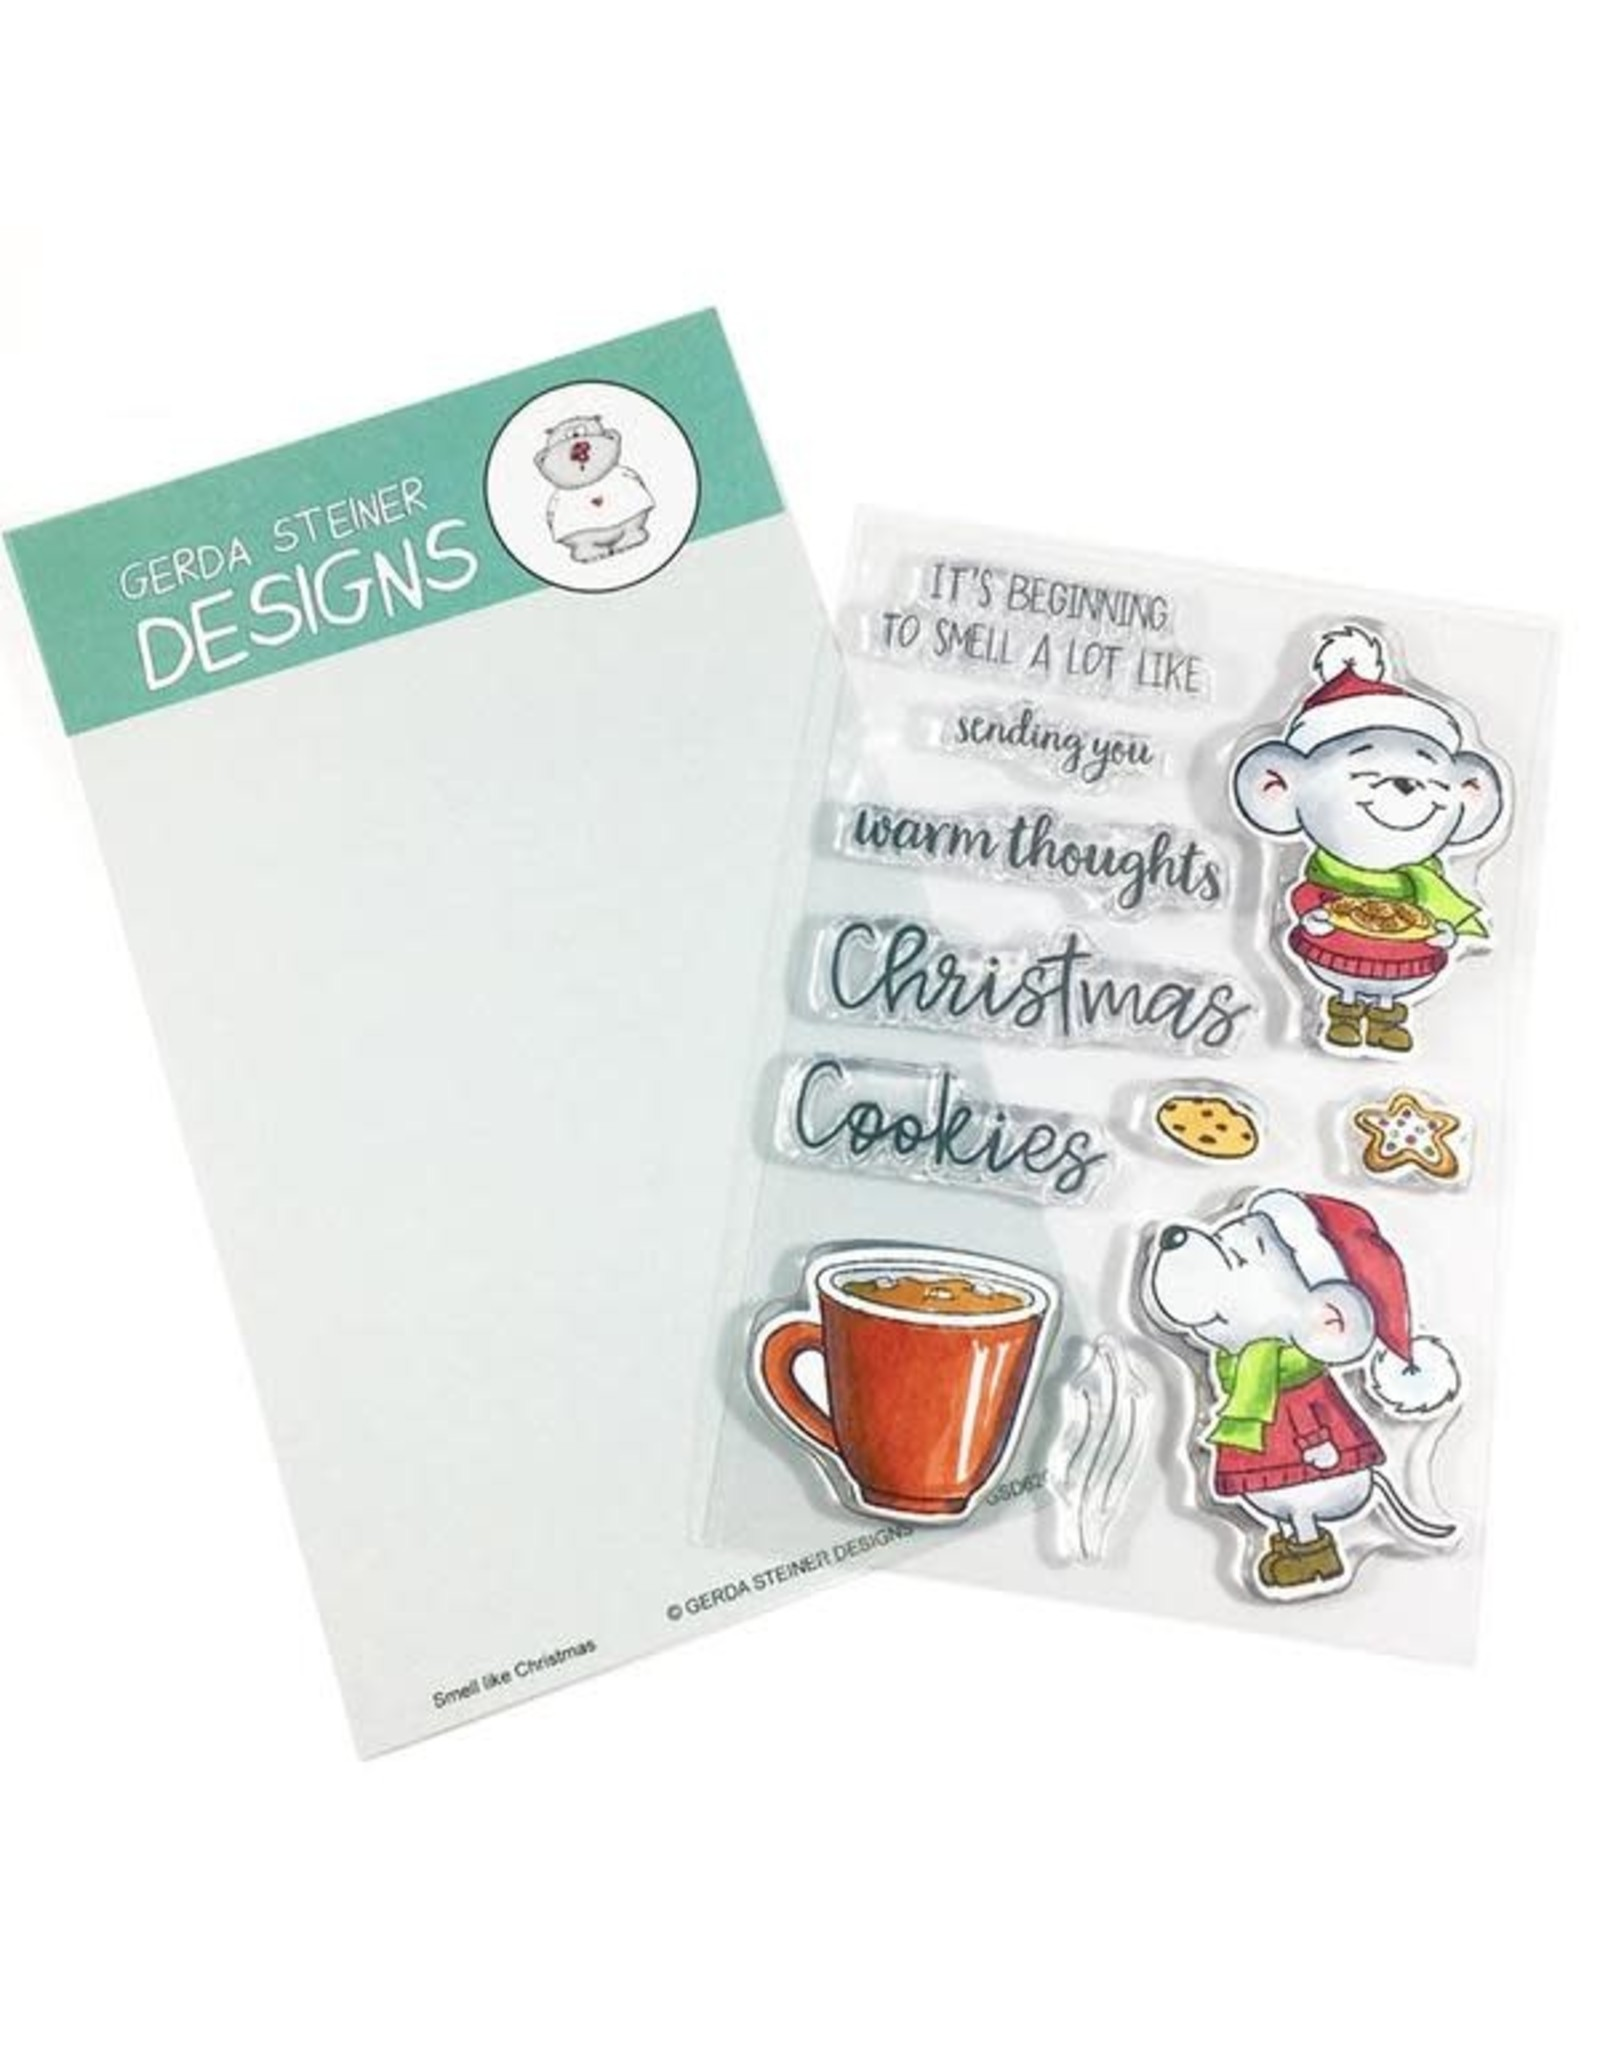 Gerda Steiner Designs Smell Like Christmas Clear Stamp Set